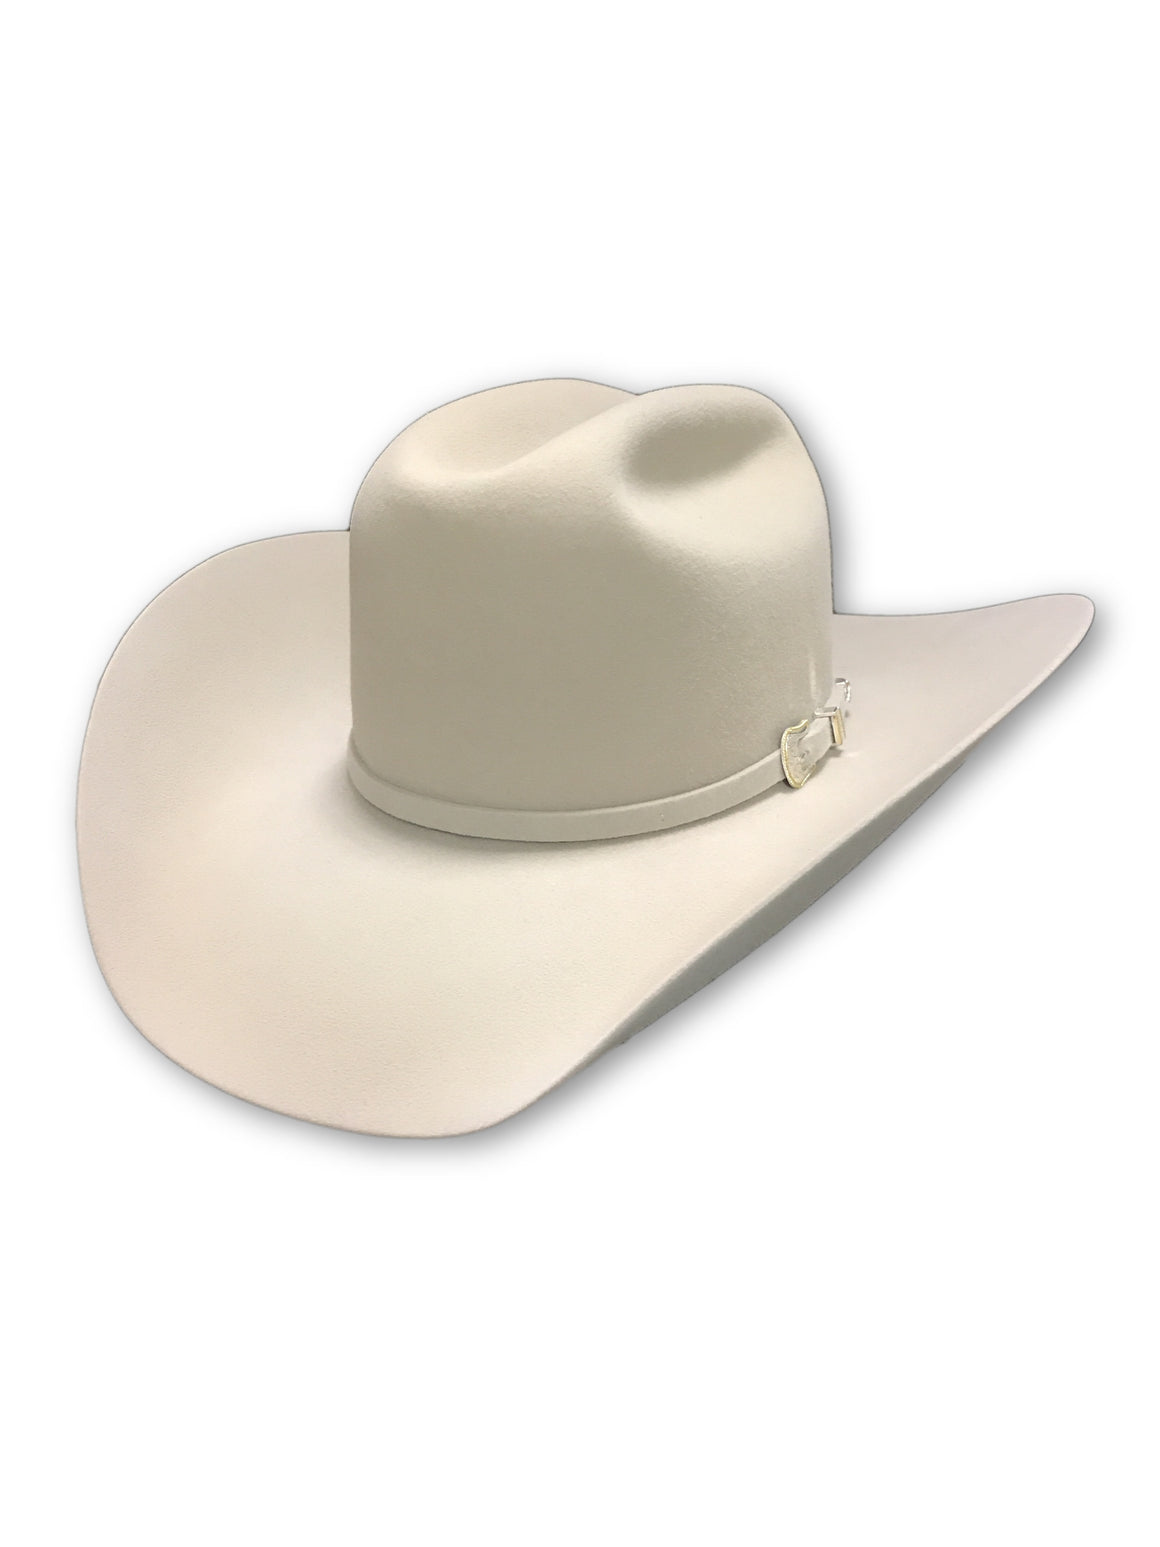 American Hat Co. - 6X Silver Belly Felt Cowboy Hat